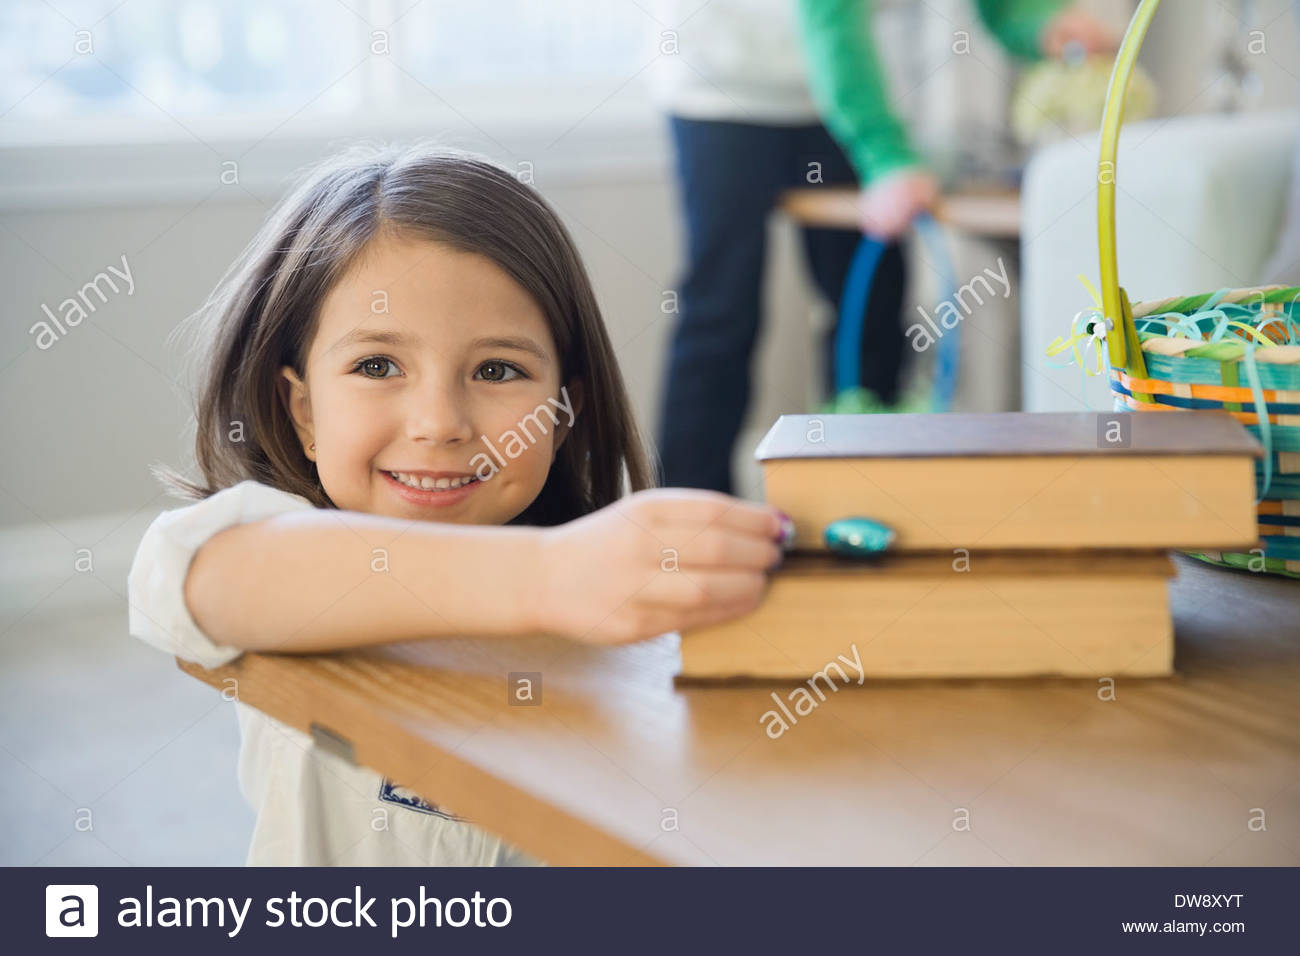 Cute girl collecting chocolate Easter eggs at home - Stock Image